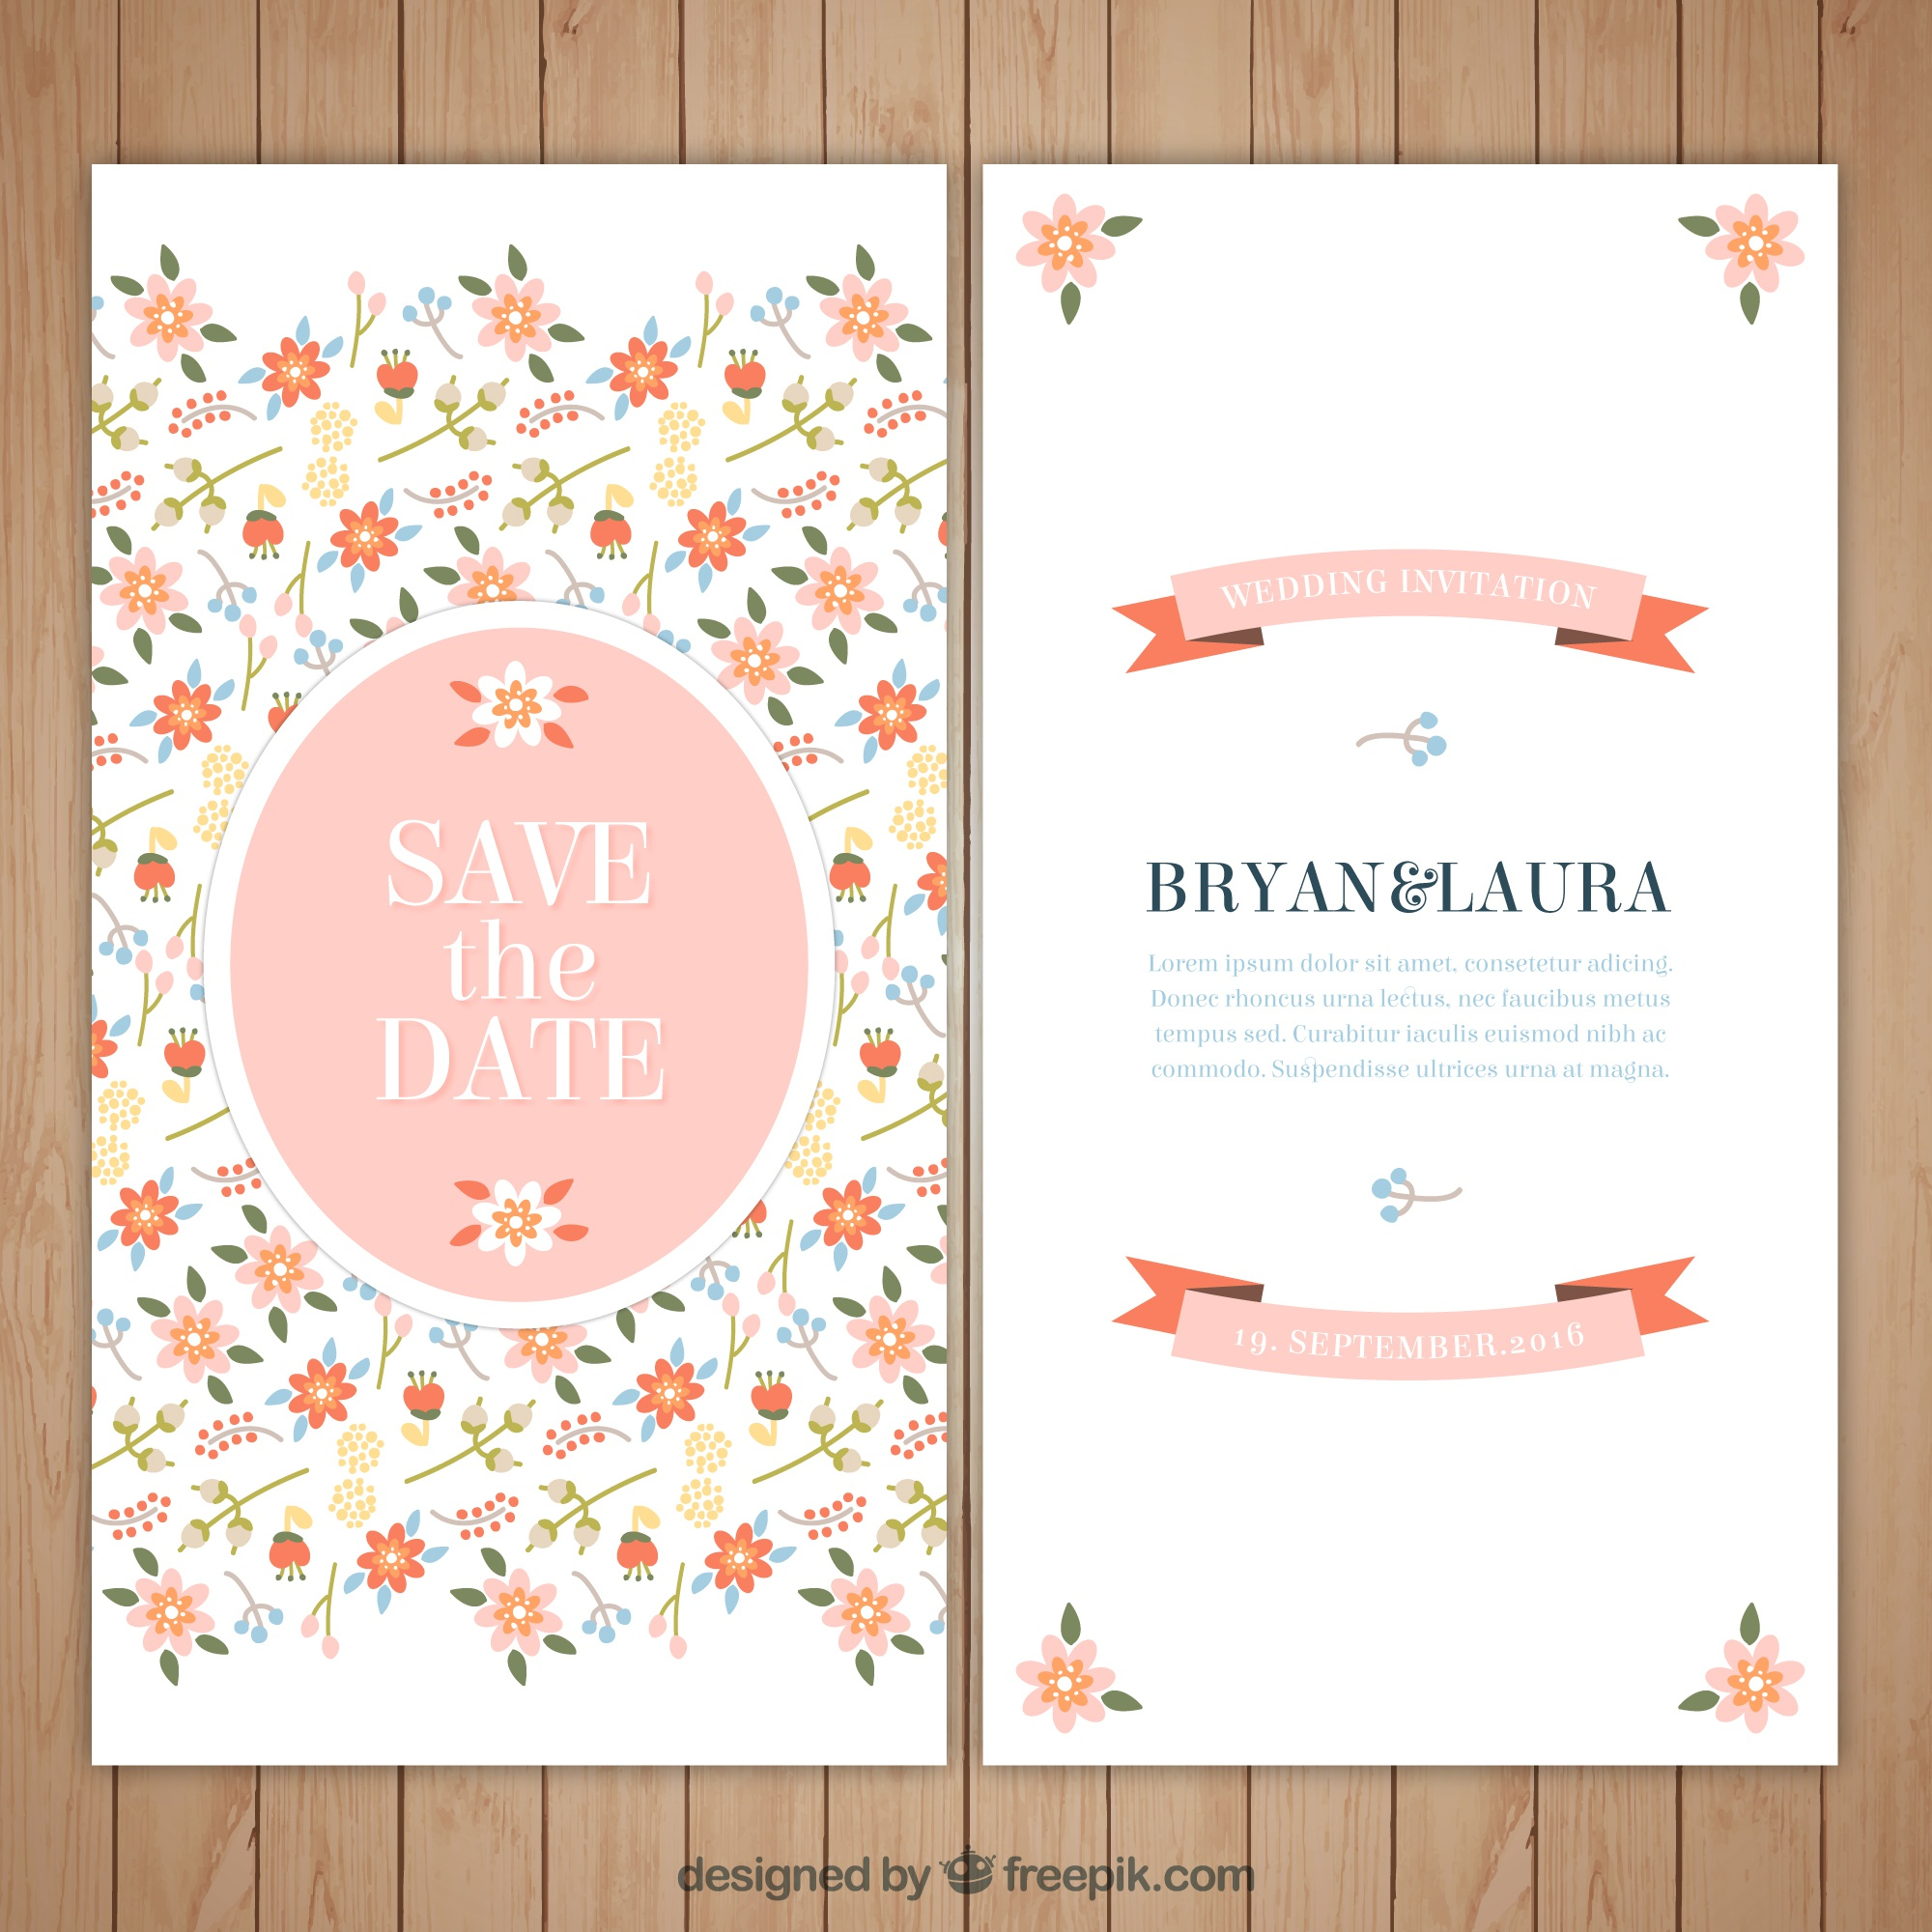 Floral and beautiful wedding invitation